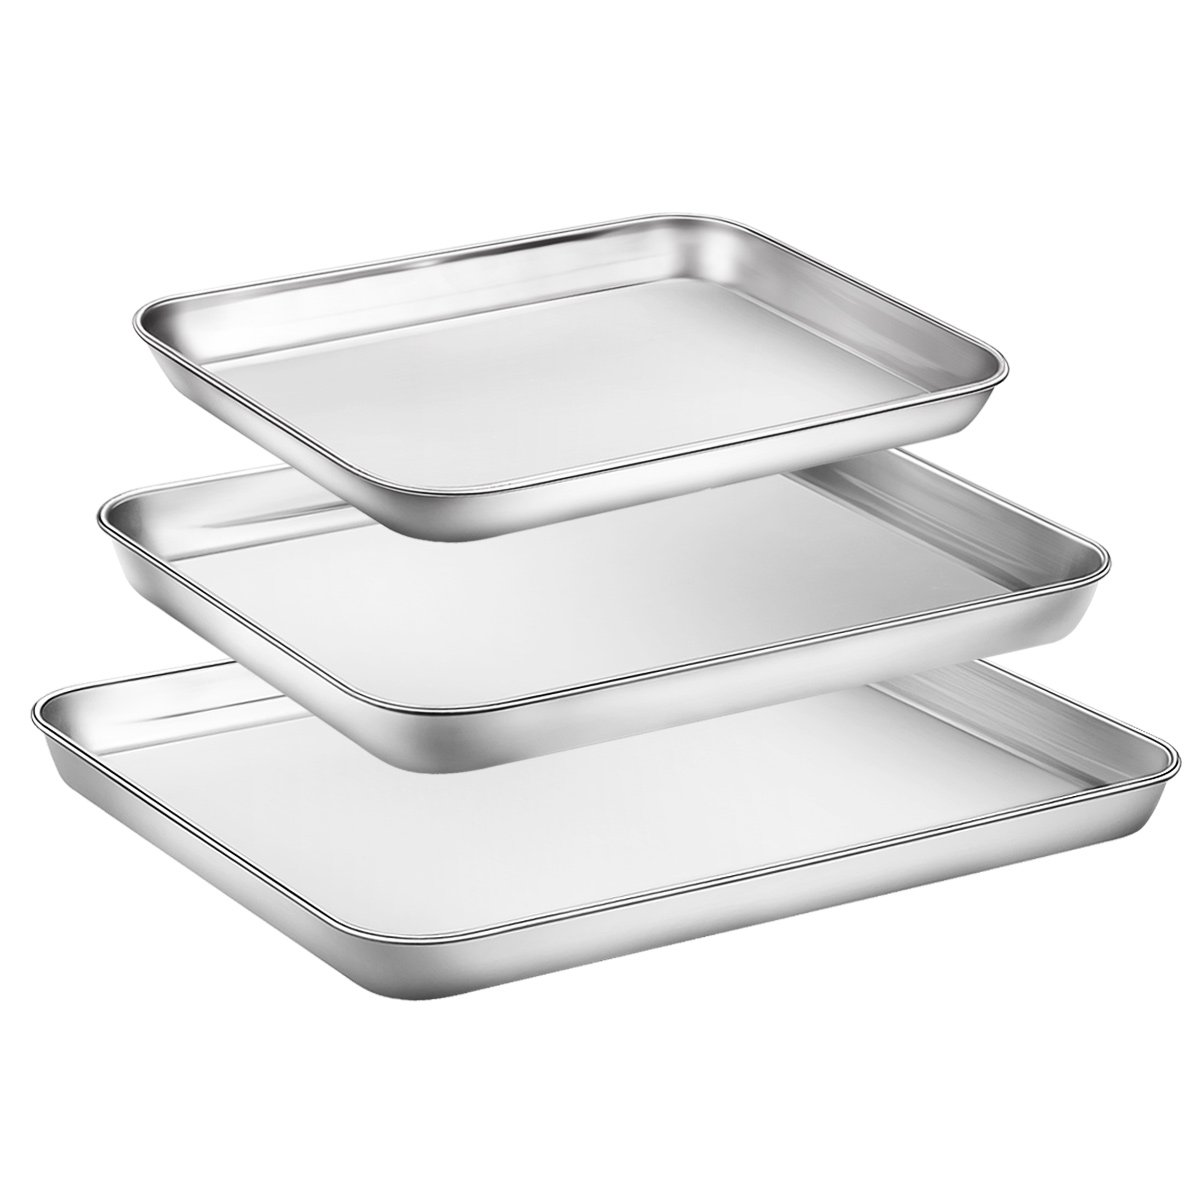 Baking Sheet Set of 3, Zacfton Stainless Steel Cookie Sheet Set 3 Pieces Toaster Oven Tray Pan Rectangle Size Non Toxic & Healthy,Superior Mirror Finish & Easy Clean, Dishwasher Safe by Zacfton